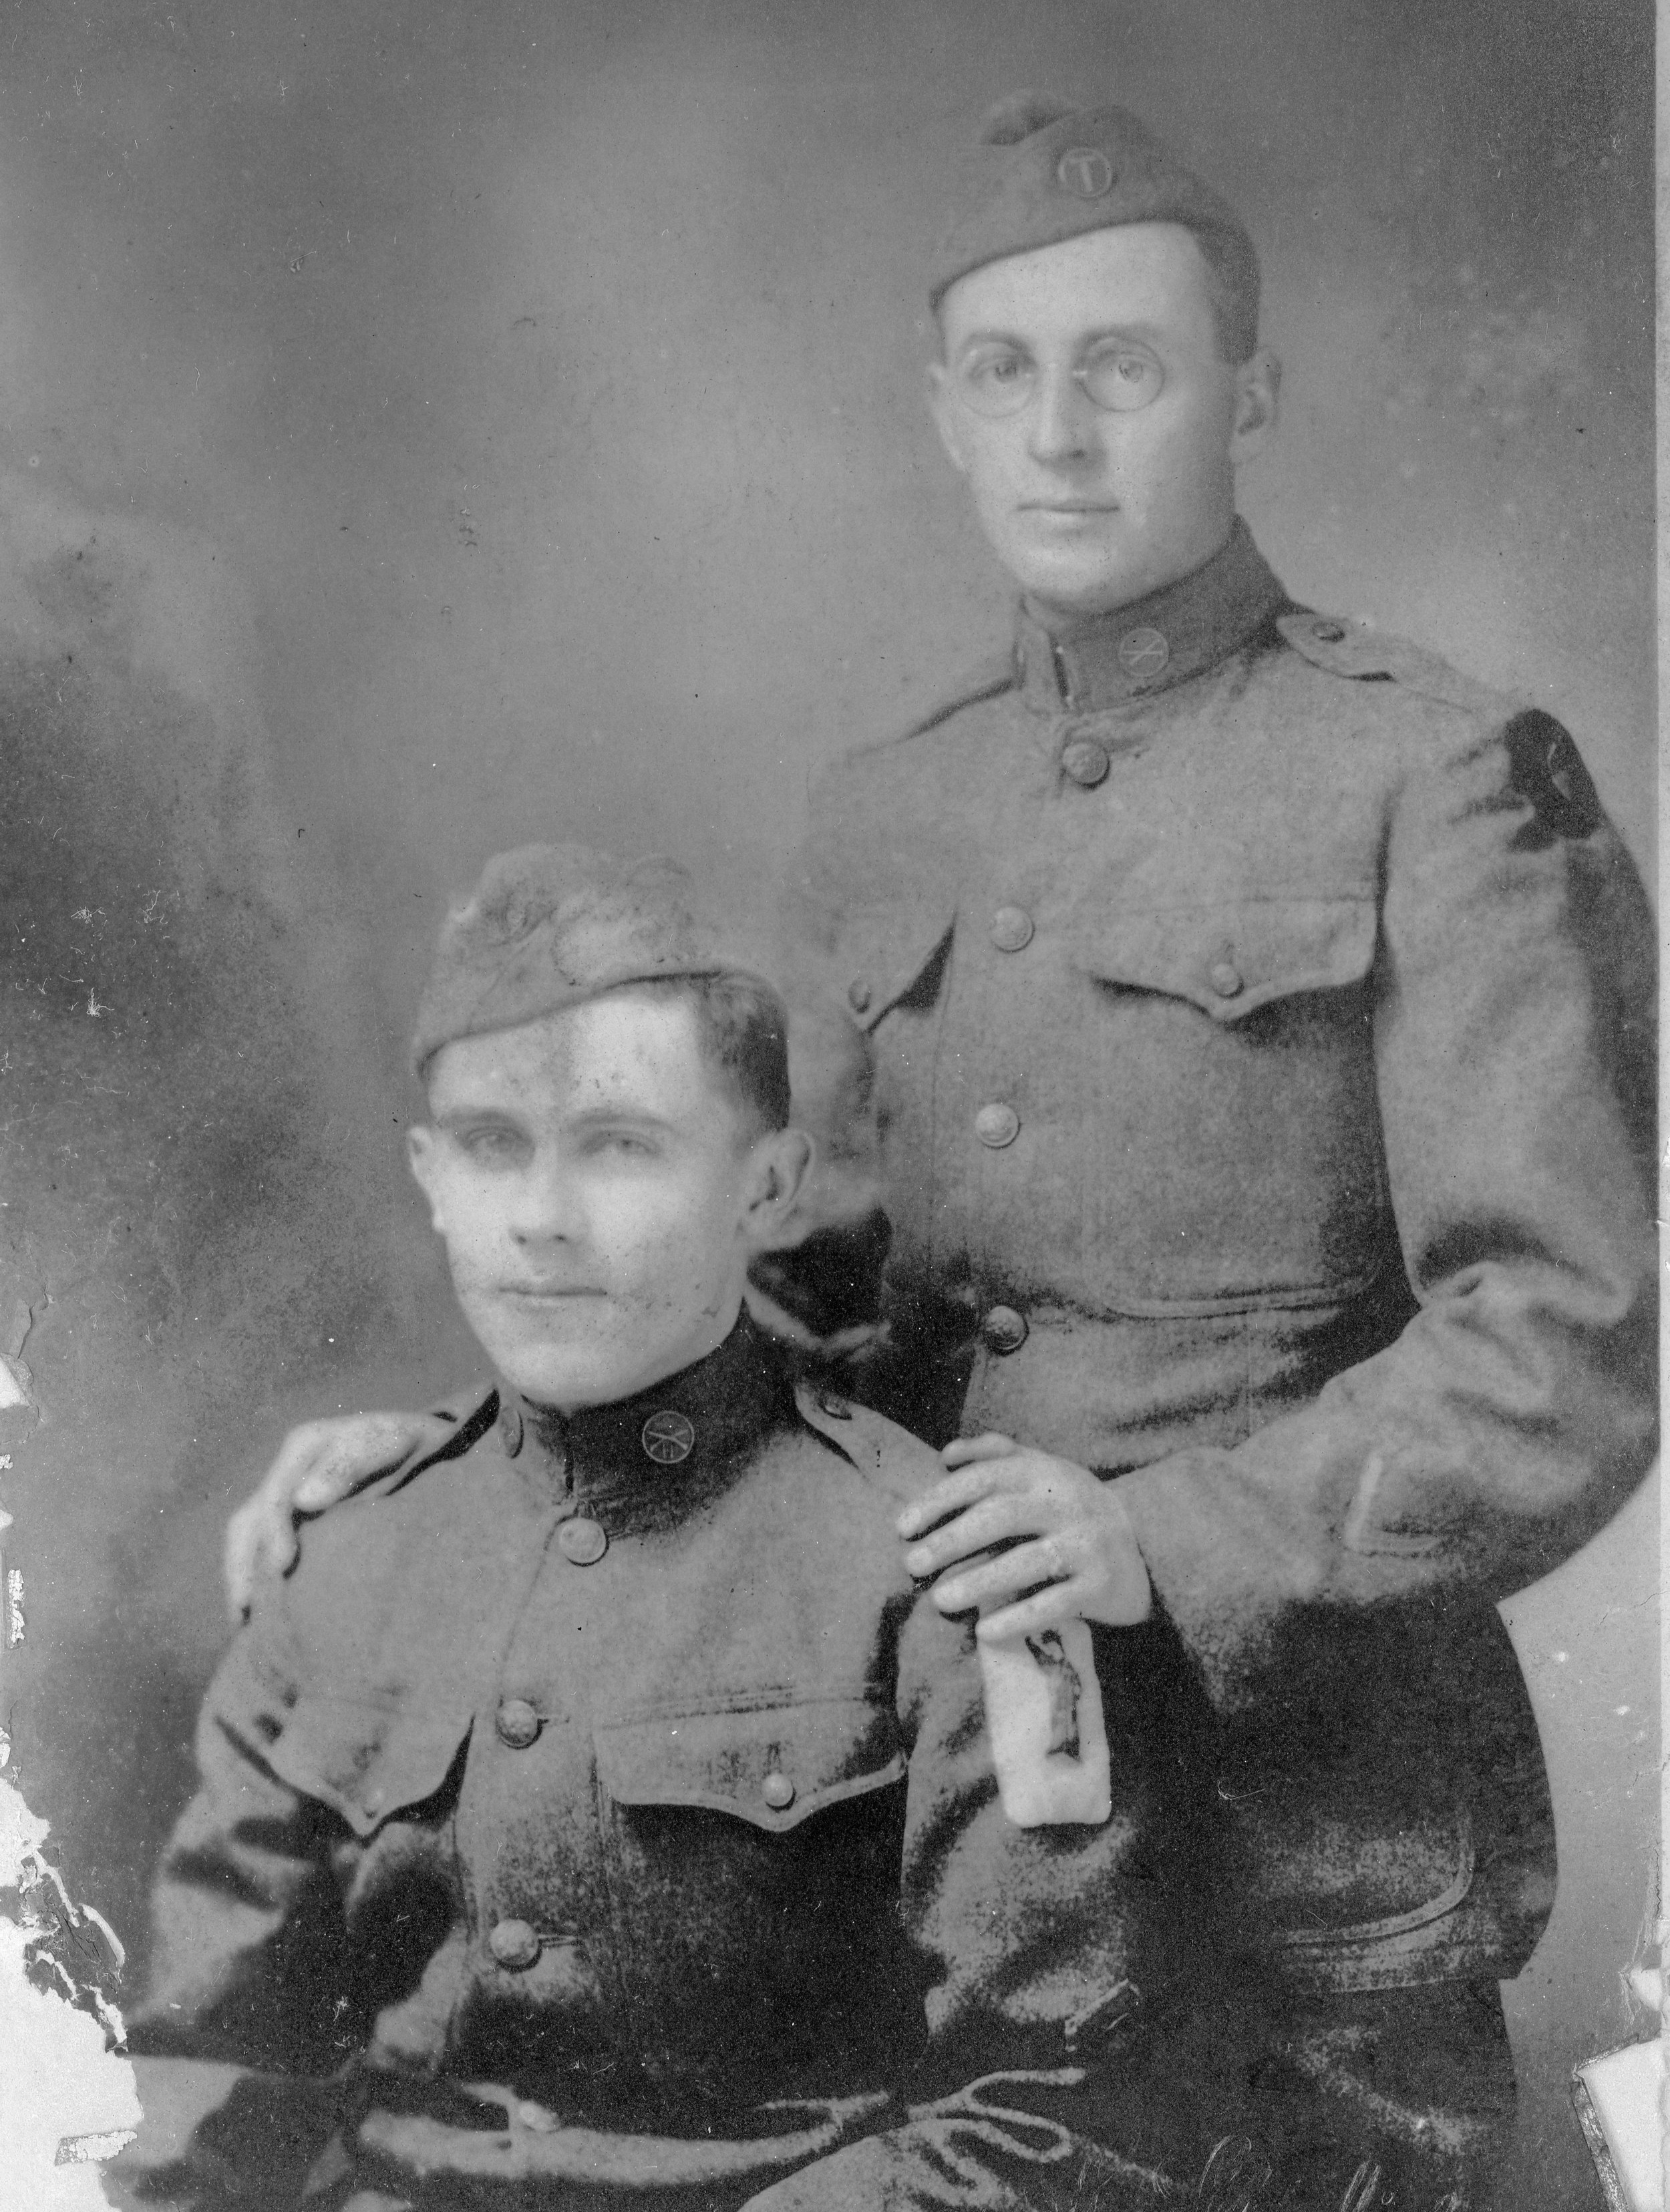 Louis Tremmel and William E. Brady in their uniforms during the First World War.